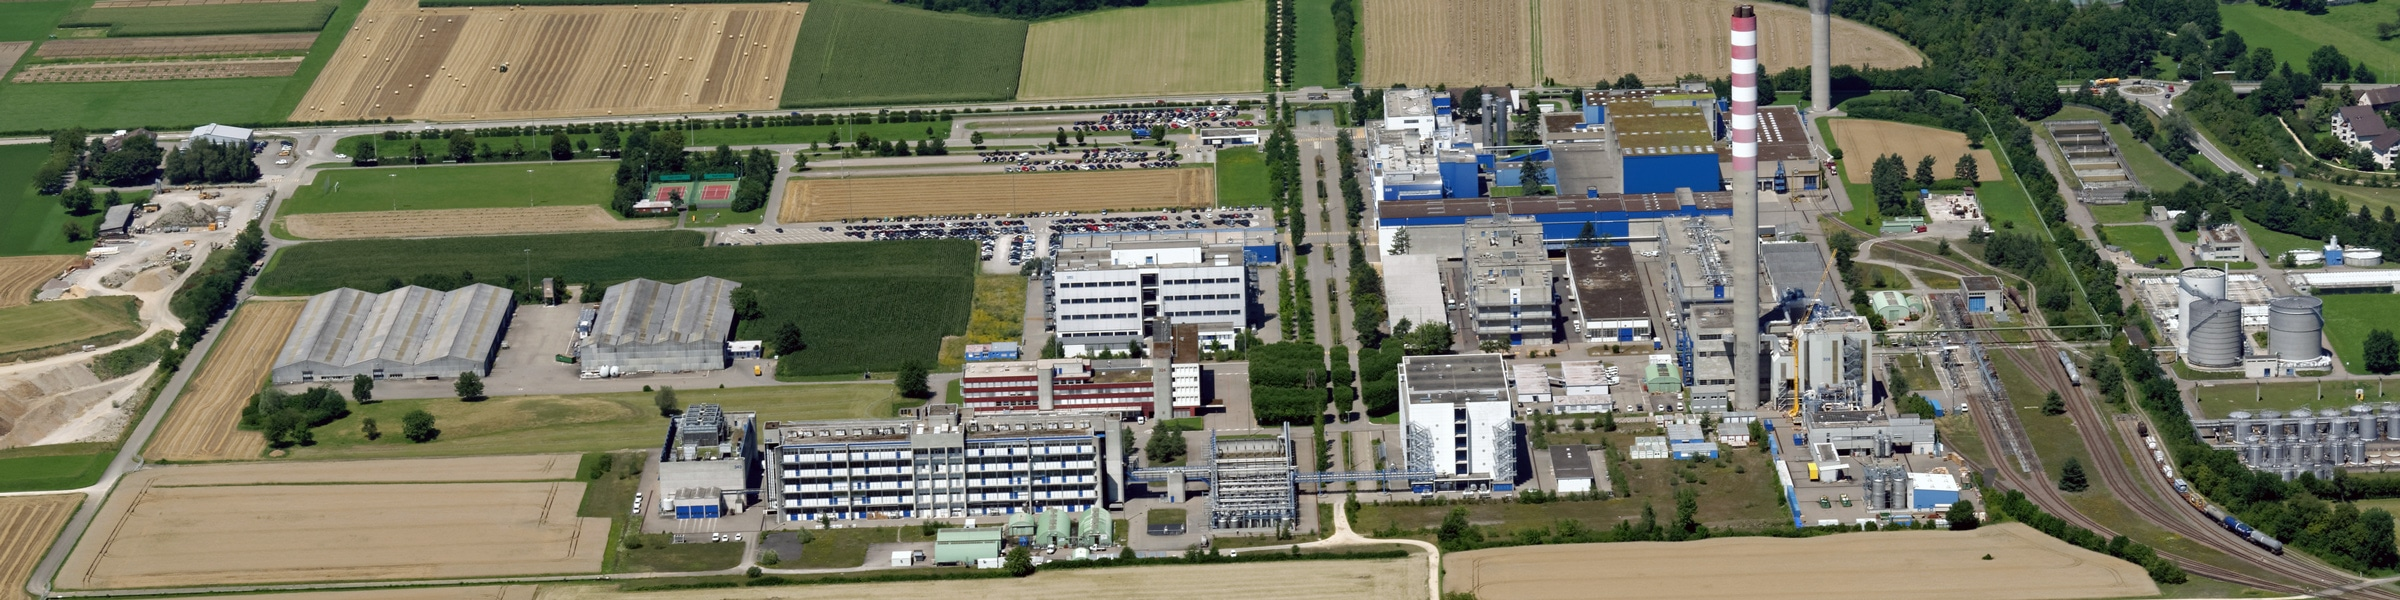 Industrieservices und Facility Management - Inotectis GmbH